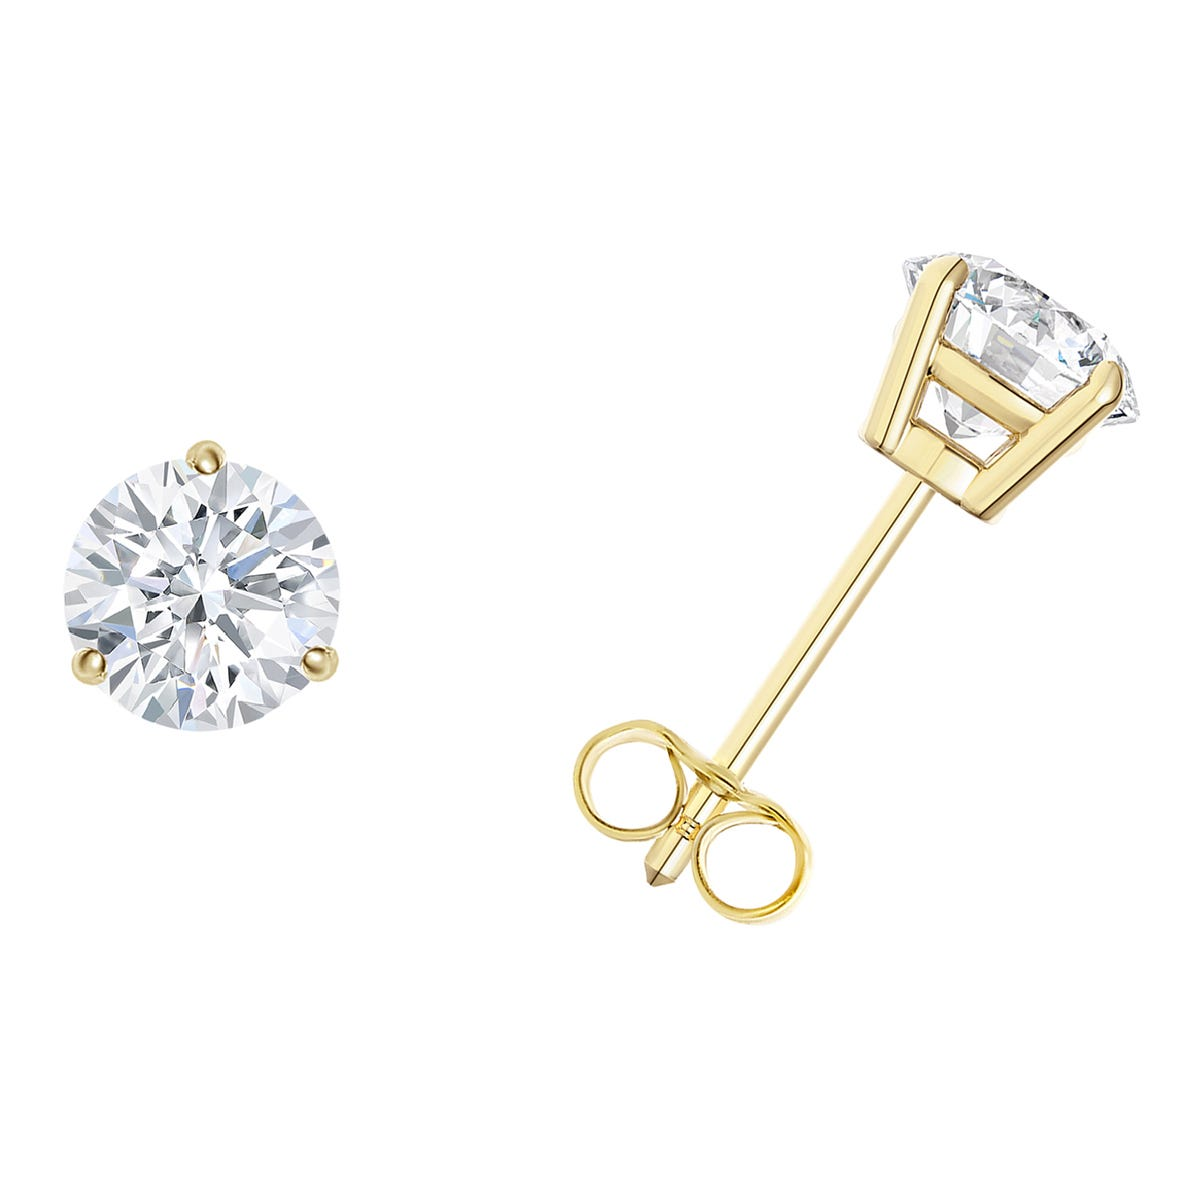 1/3 CTTW Round Diamond Solitaire Stud 3-prong Earrings in 14K Yellow Gold (I-I2) IGI Certified